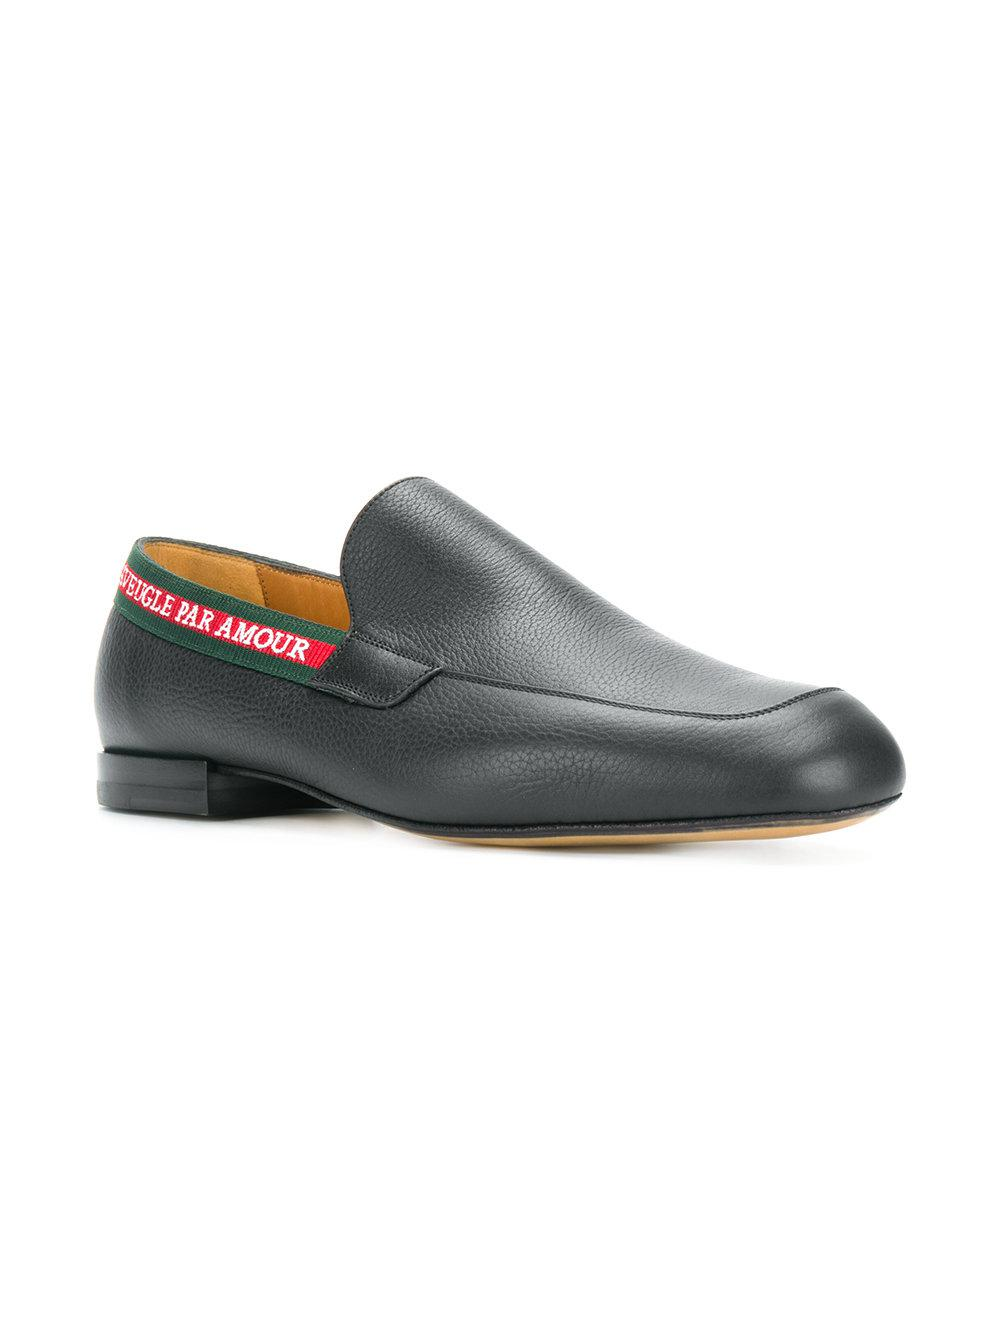 046abcbbb2f Lyst - Gucci L aveugle Par Amour Loafers in Black for Men - Save 62%